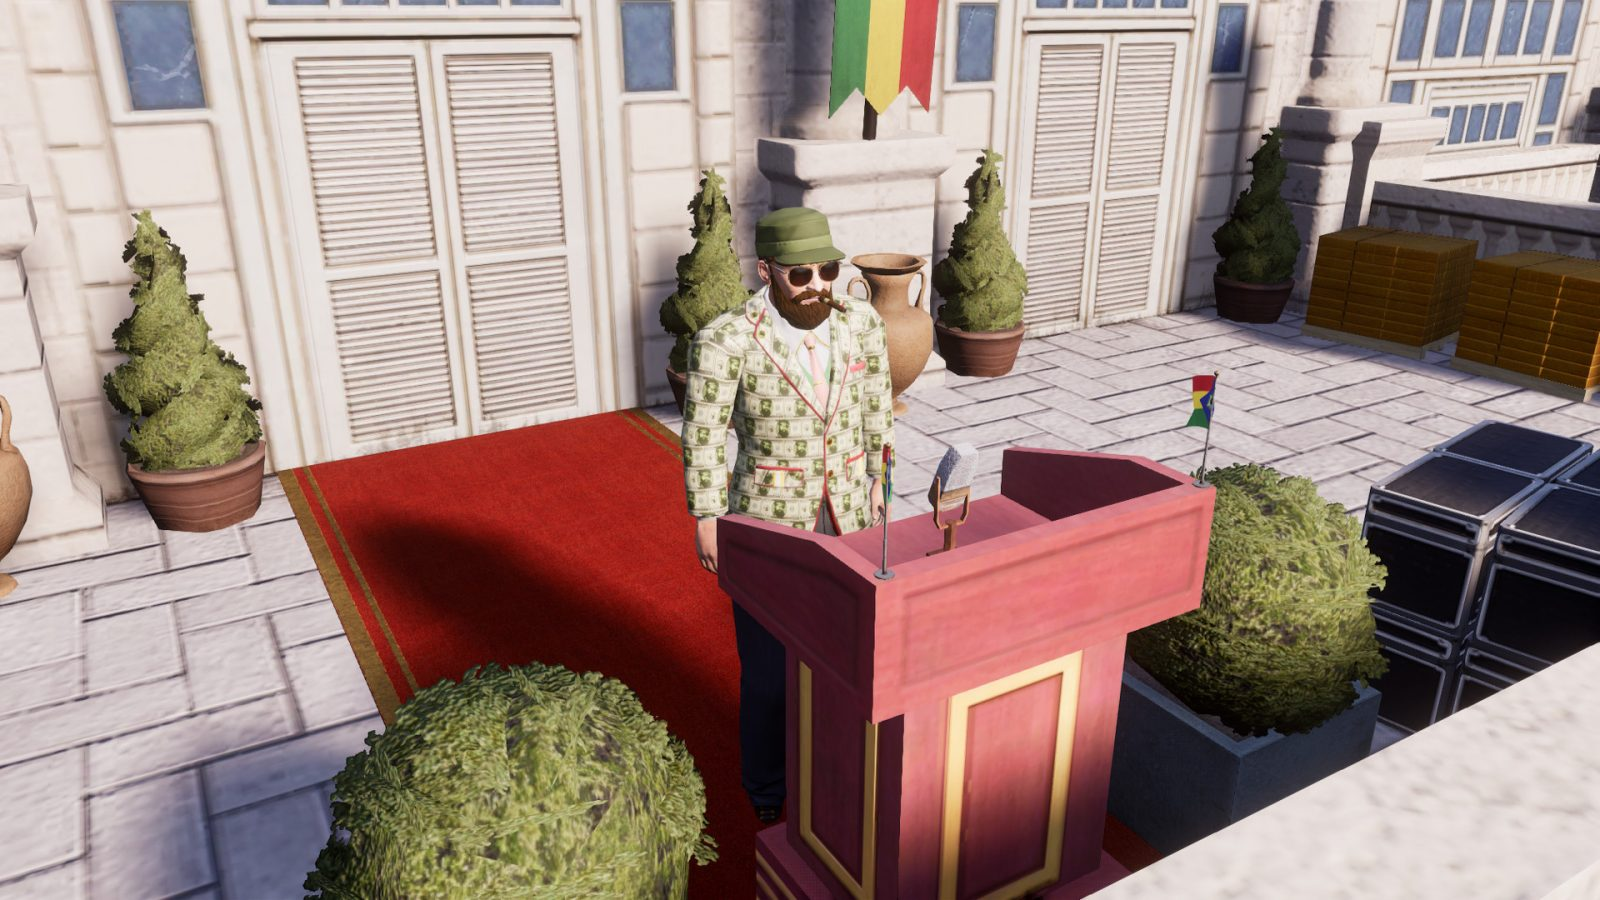 Tropico 6 gets two new expansions from opposite ends of the political spectrum